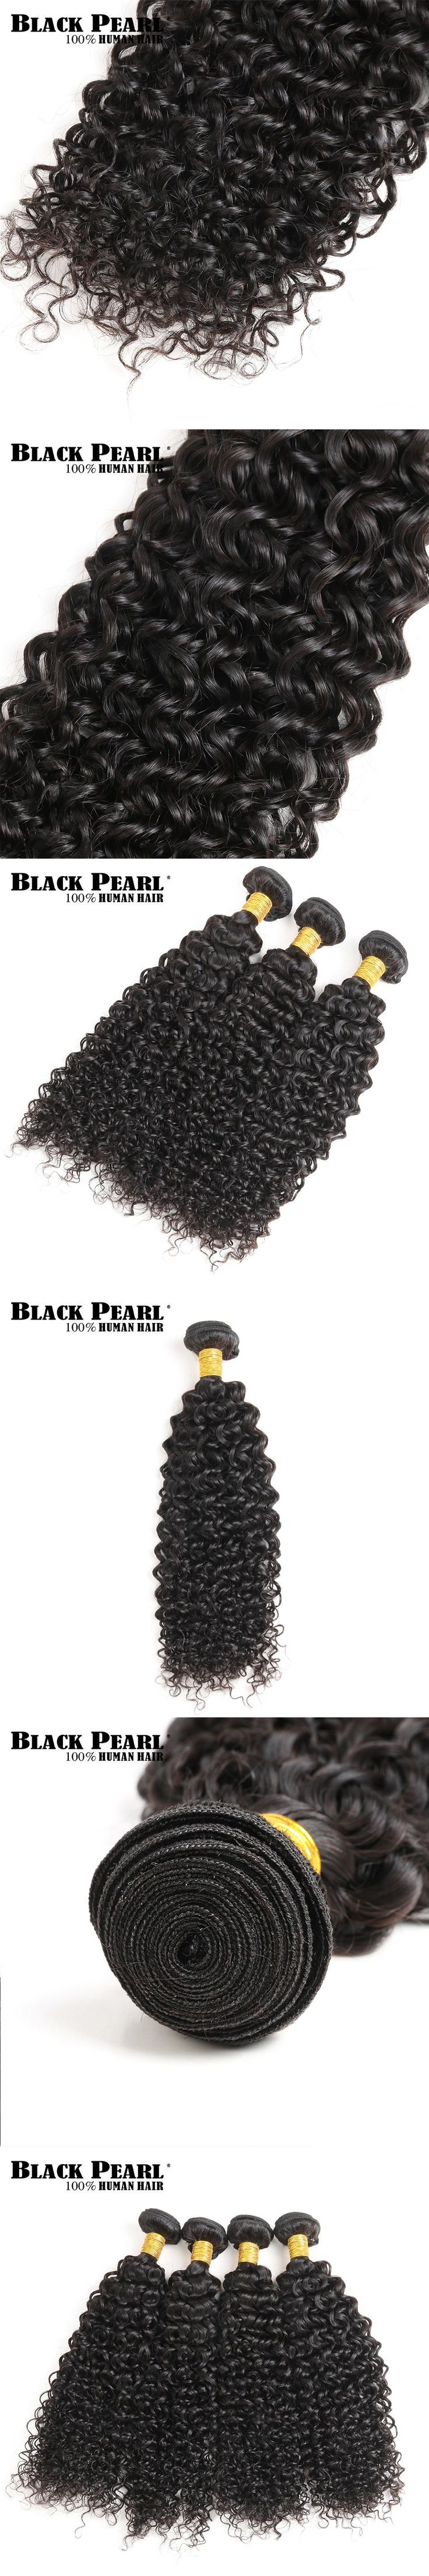 Black Pearl Pre-Colored Curly Weave Human Hair Bundles 1PC Peruvian Hair Weave Can Buy 3/ 4 Bundles Hair Extensions Non-Remy